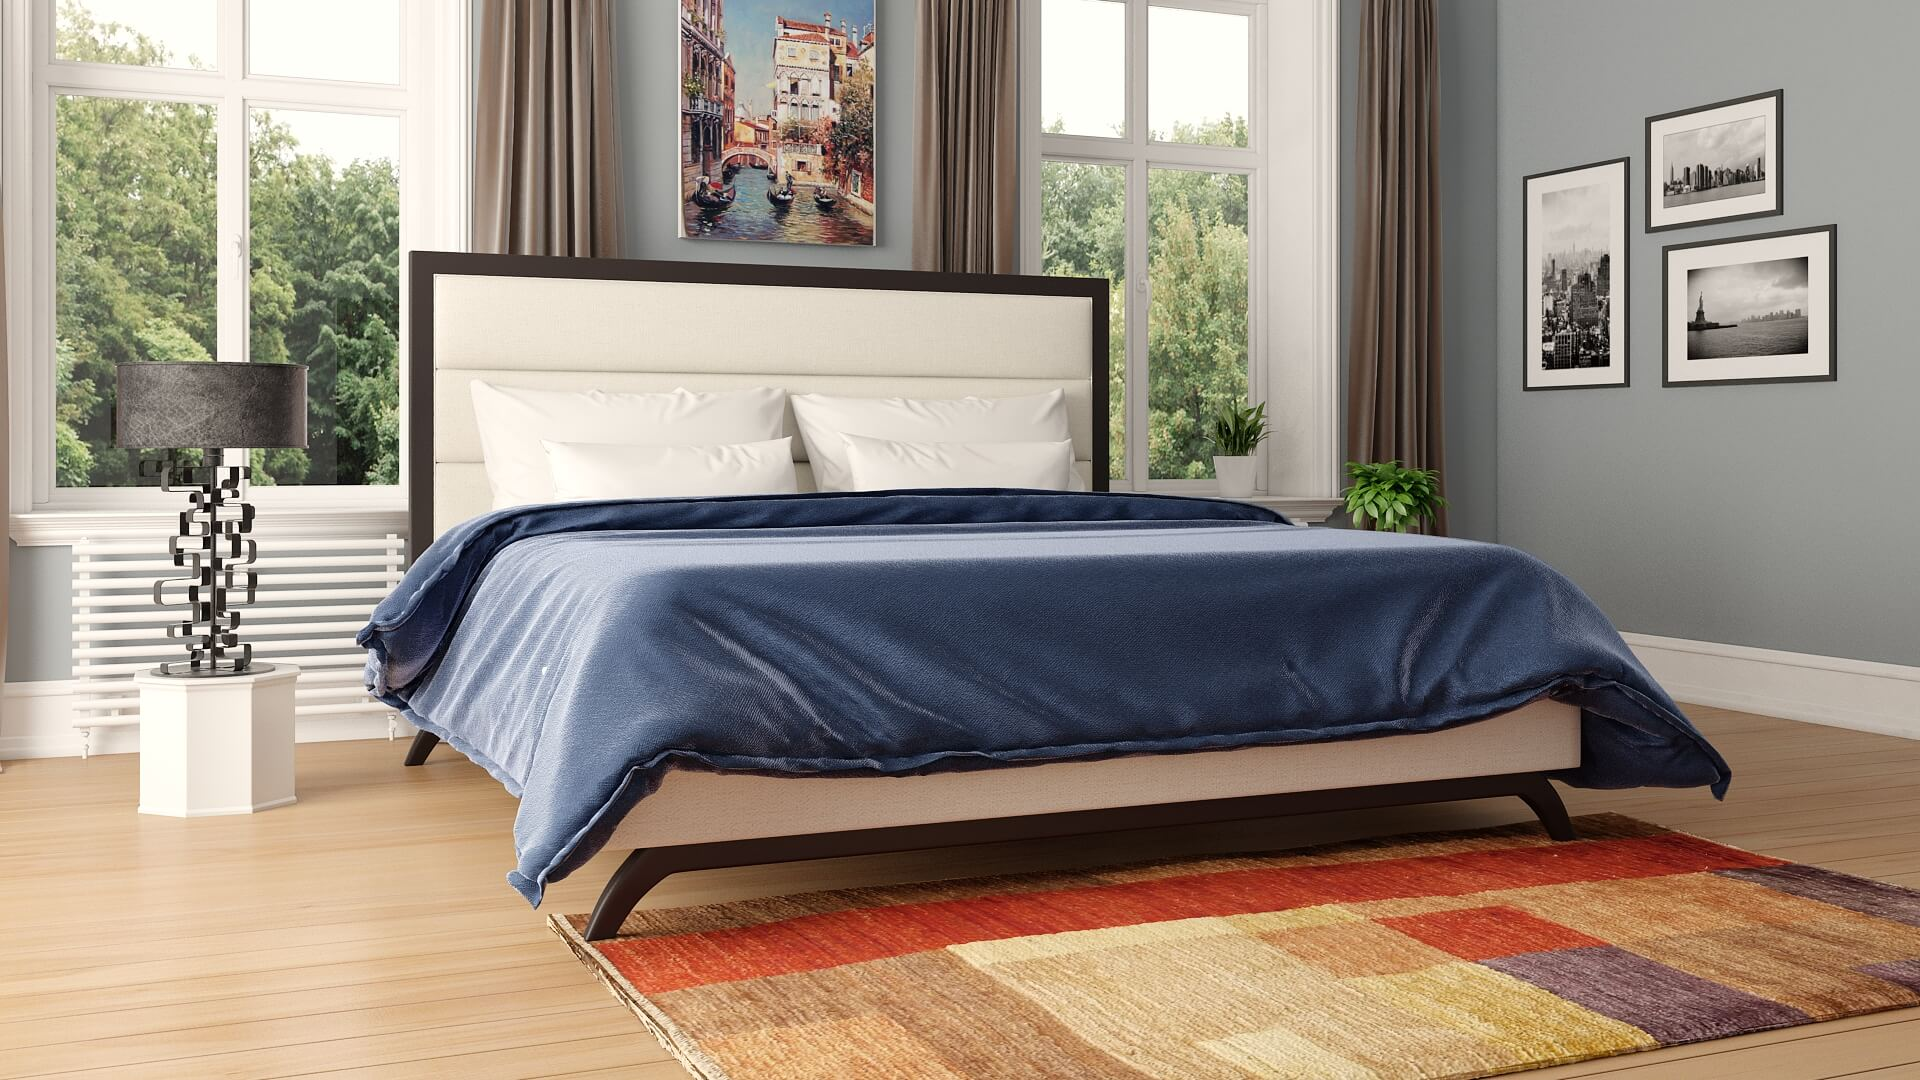 meliano bed furniture gallery 4